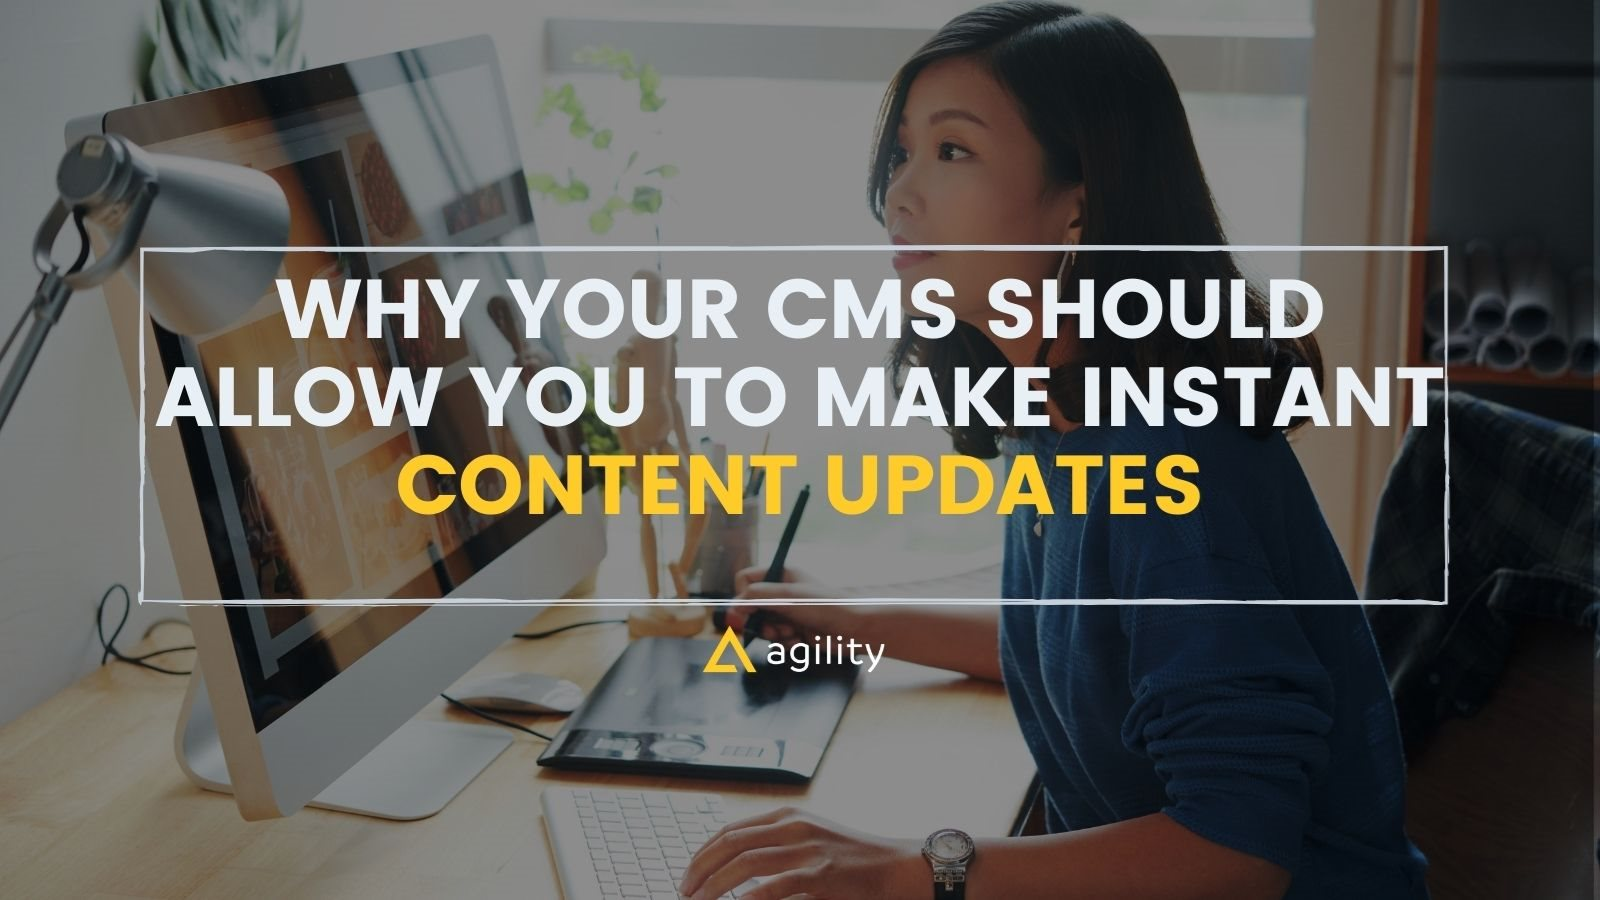 Why Your CMS Should Allow You To Make Instant Content Updates